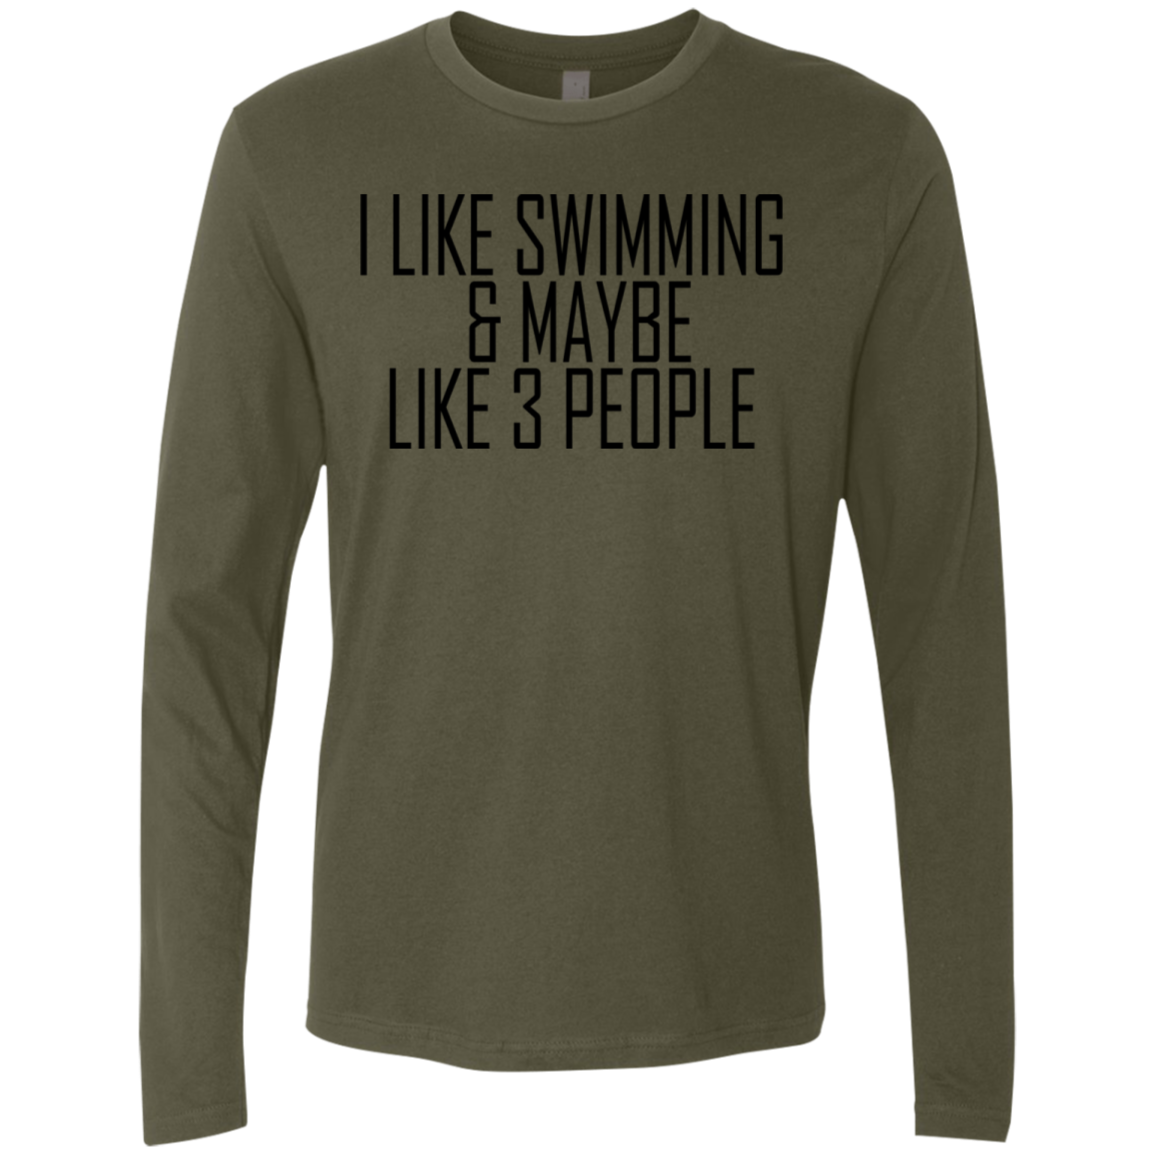 I Like Swimming' Maybe 3 People Men's Long Sleeve Tee